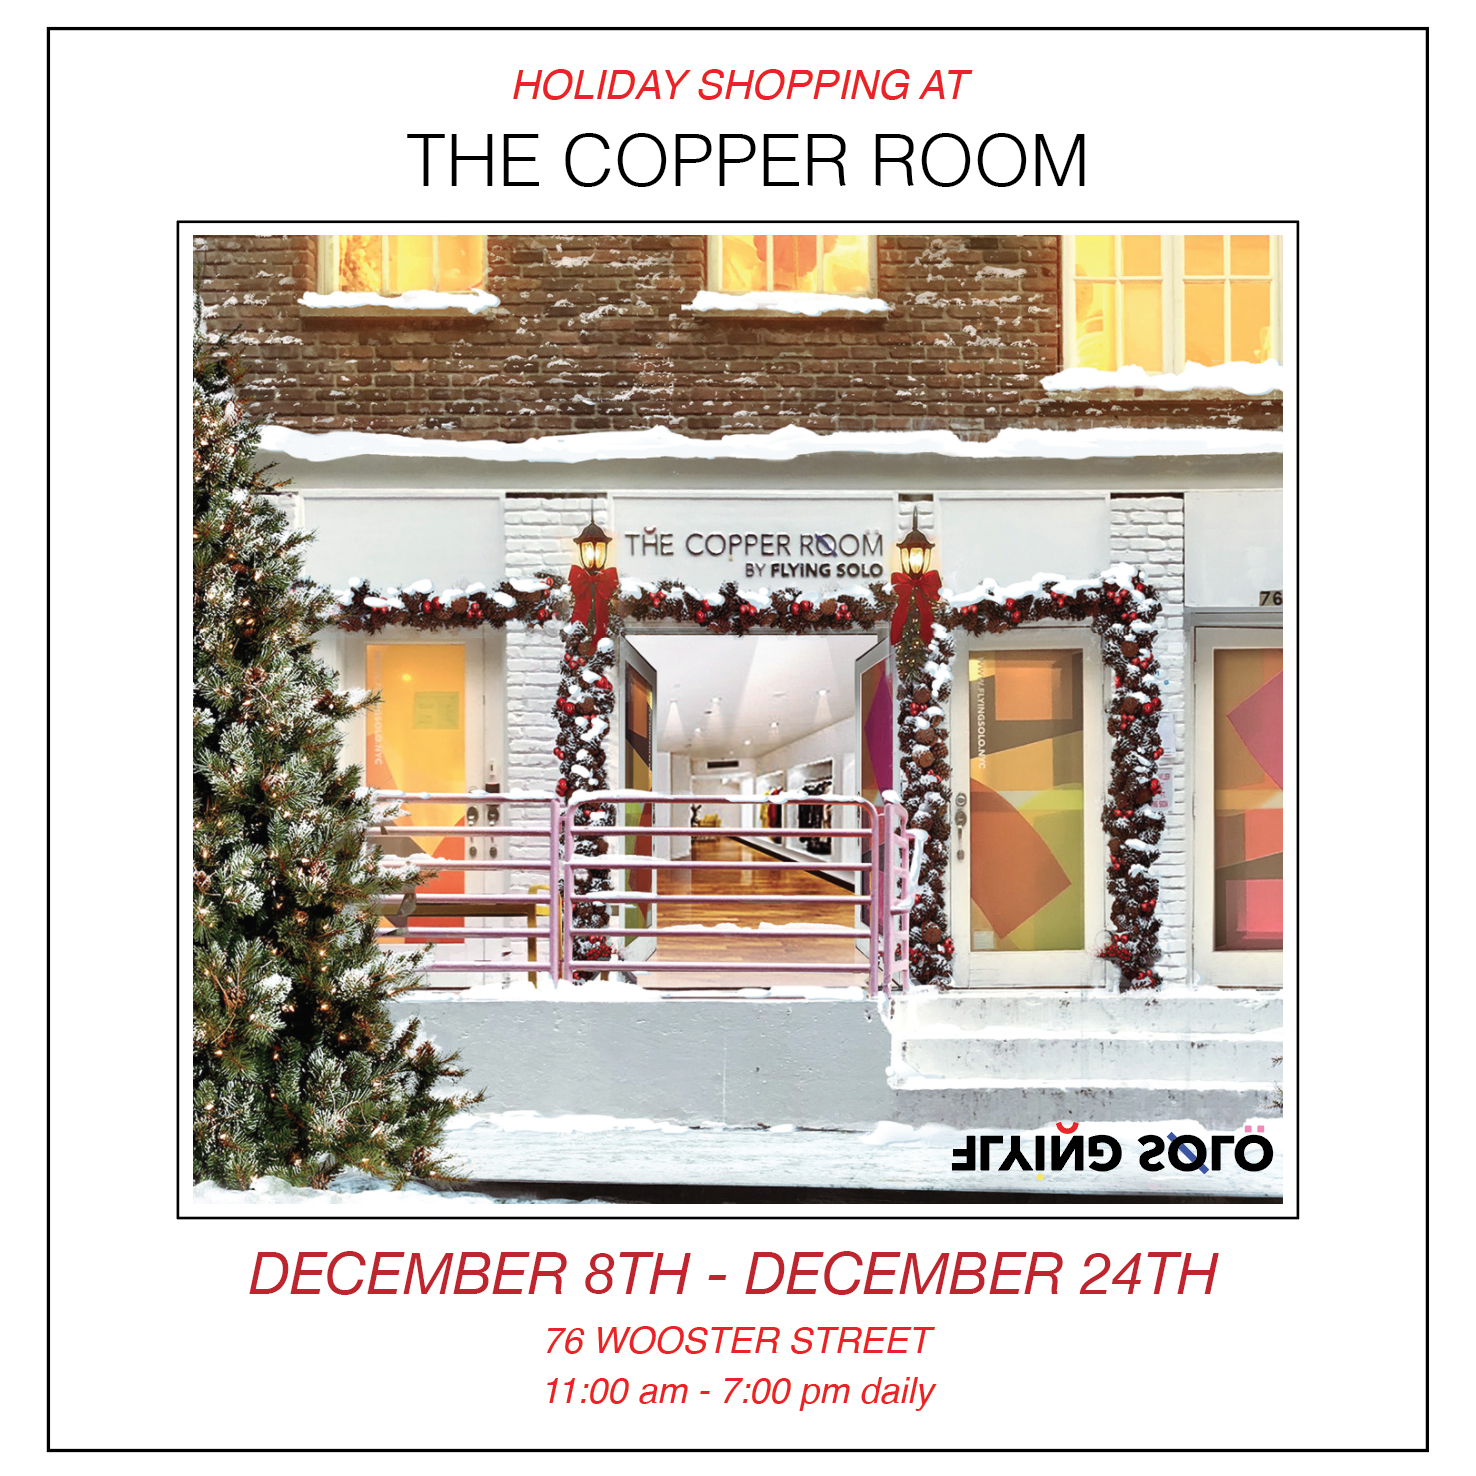 - For all your holiday shopping needs! I'll be joining the many talented local designers of Flying Solo's holiday pop-up at the Copper Room in SoHo. Work will be on display for sale through December 24.